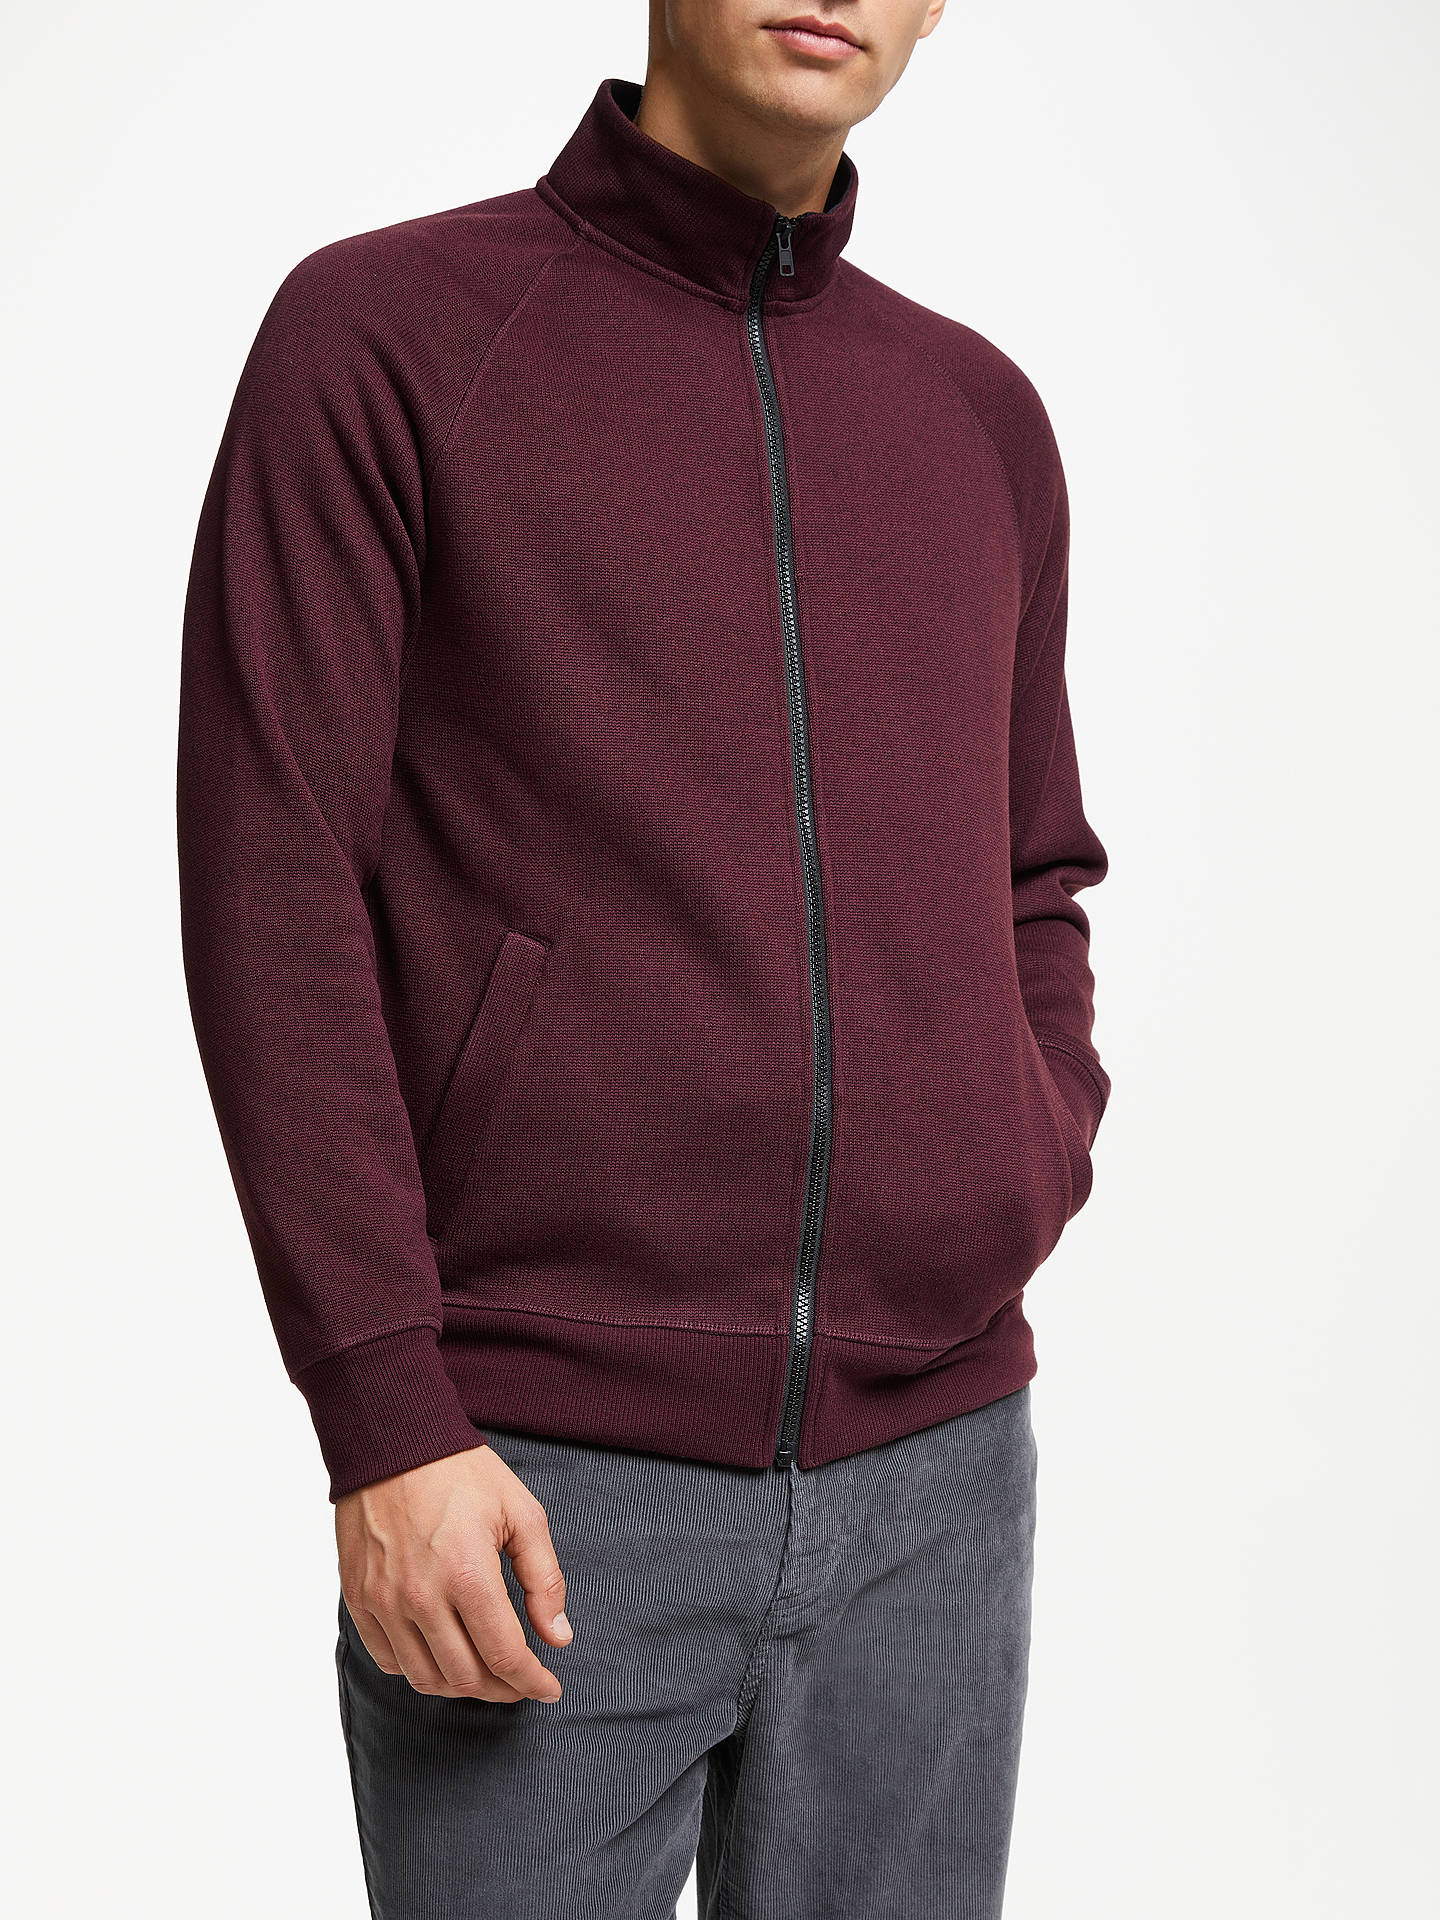 Buy John Lewis & Partners Funnel Neck Fleece Jacket, Burgundy, S Online at johnlewis.com